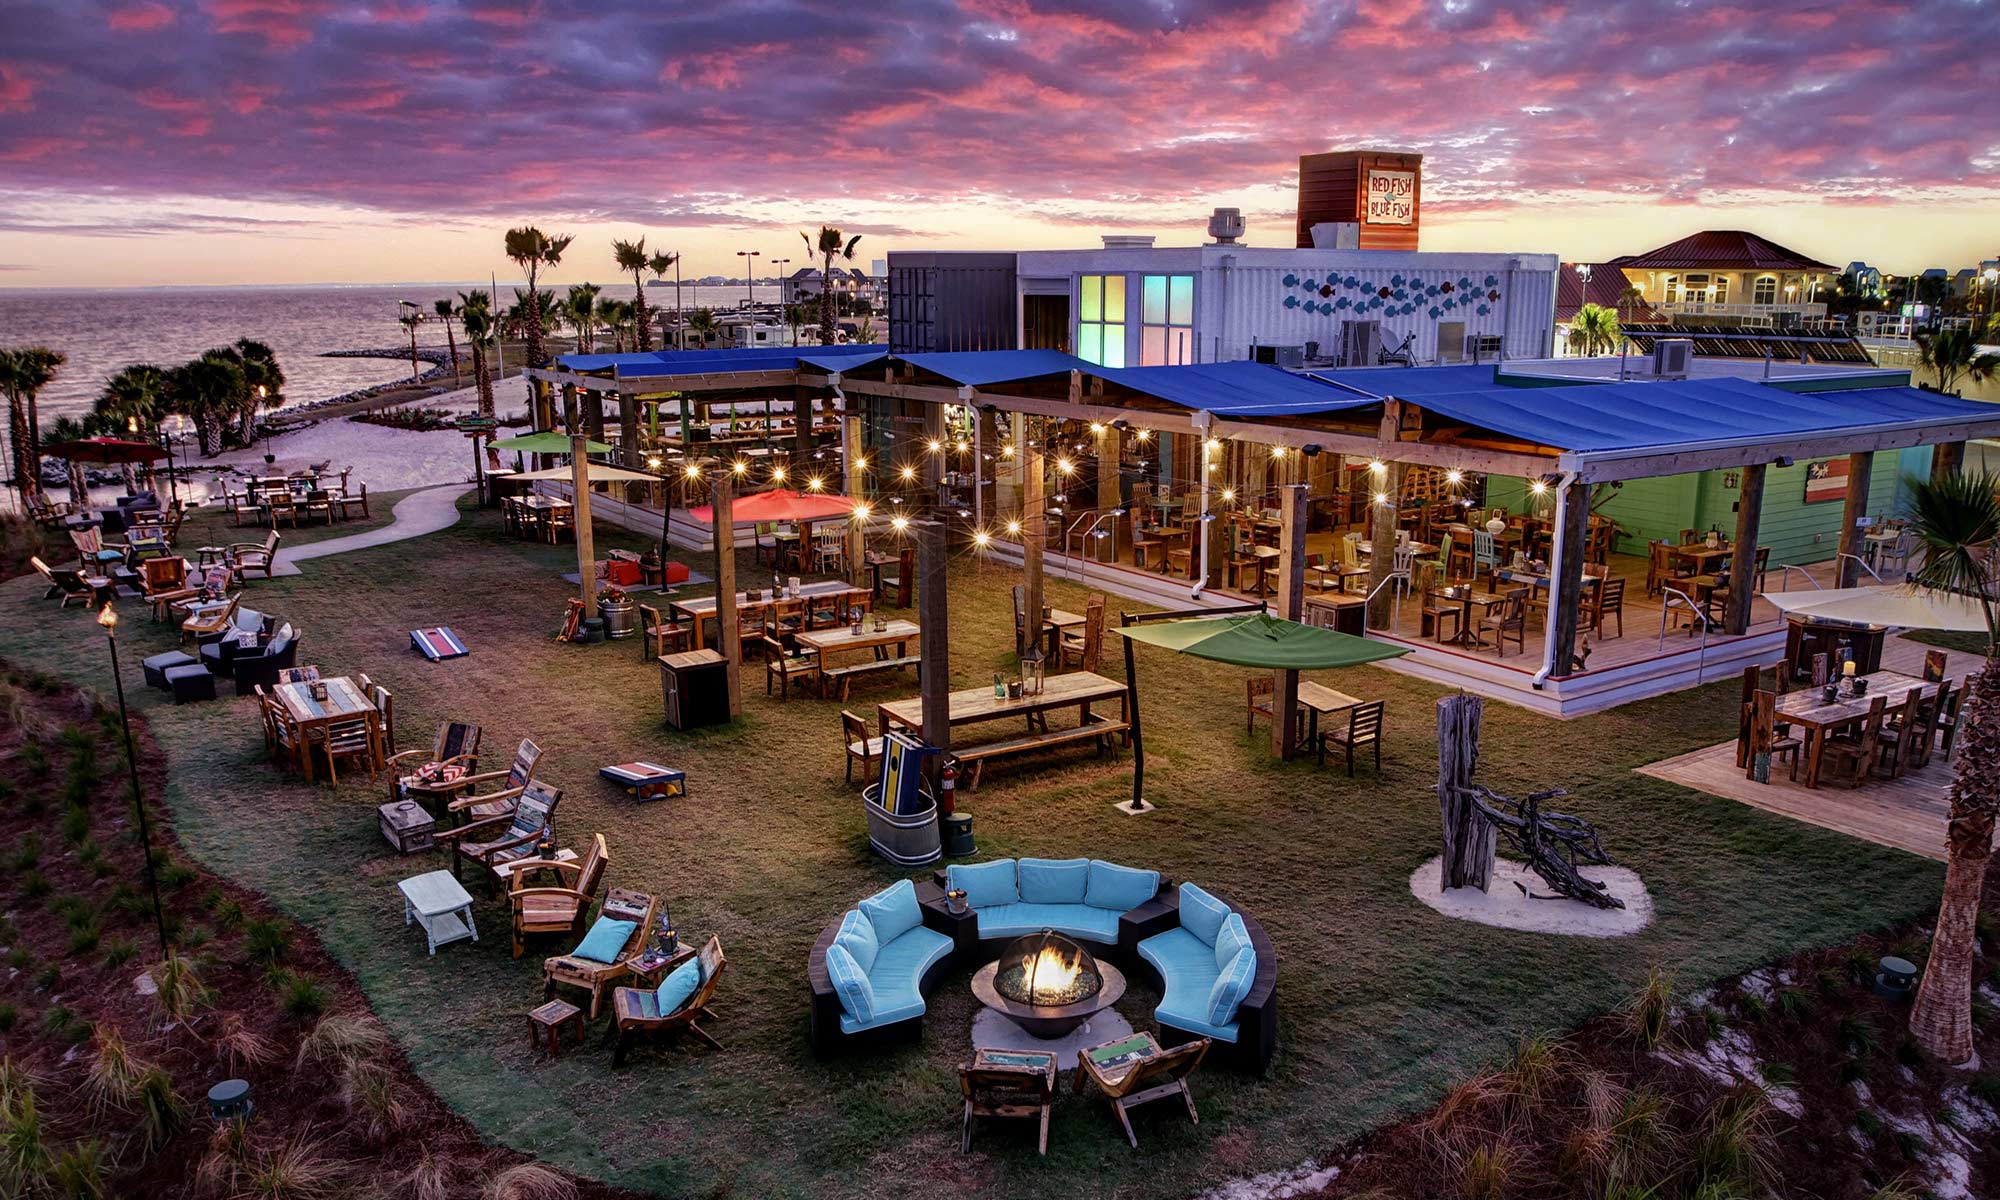 Red fish blue fish restaurant pensacola beach for Blue fish florida